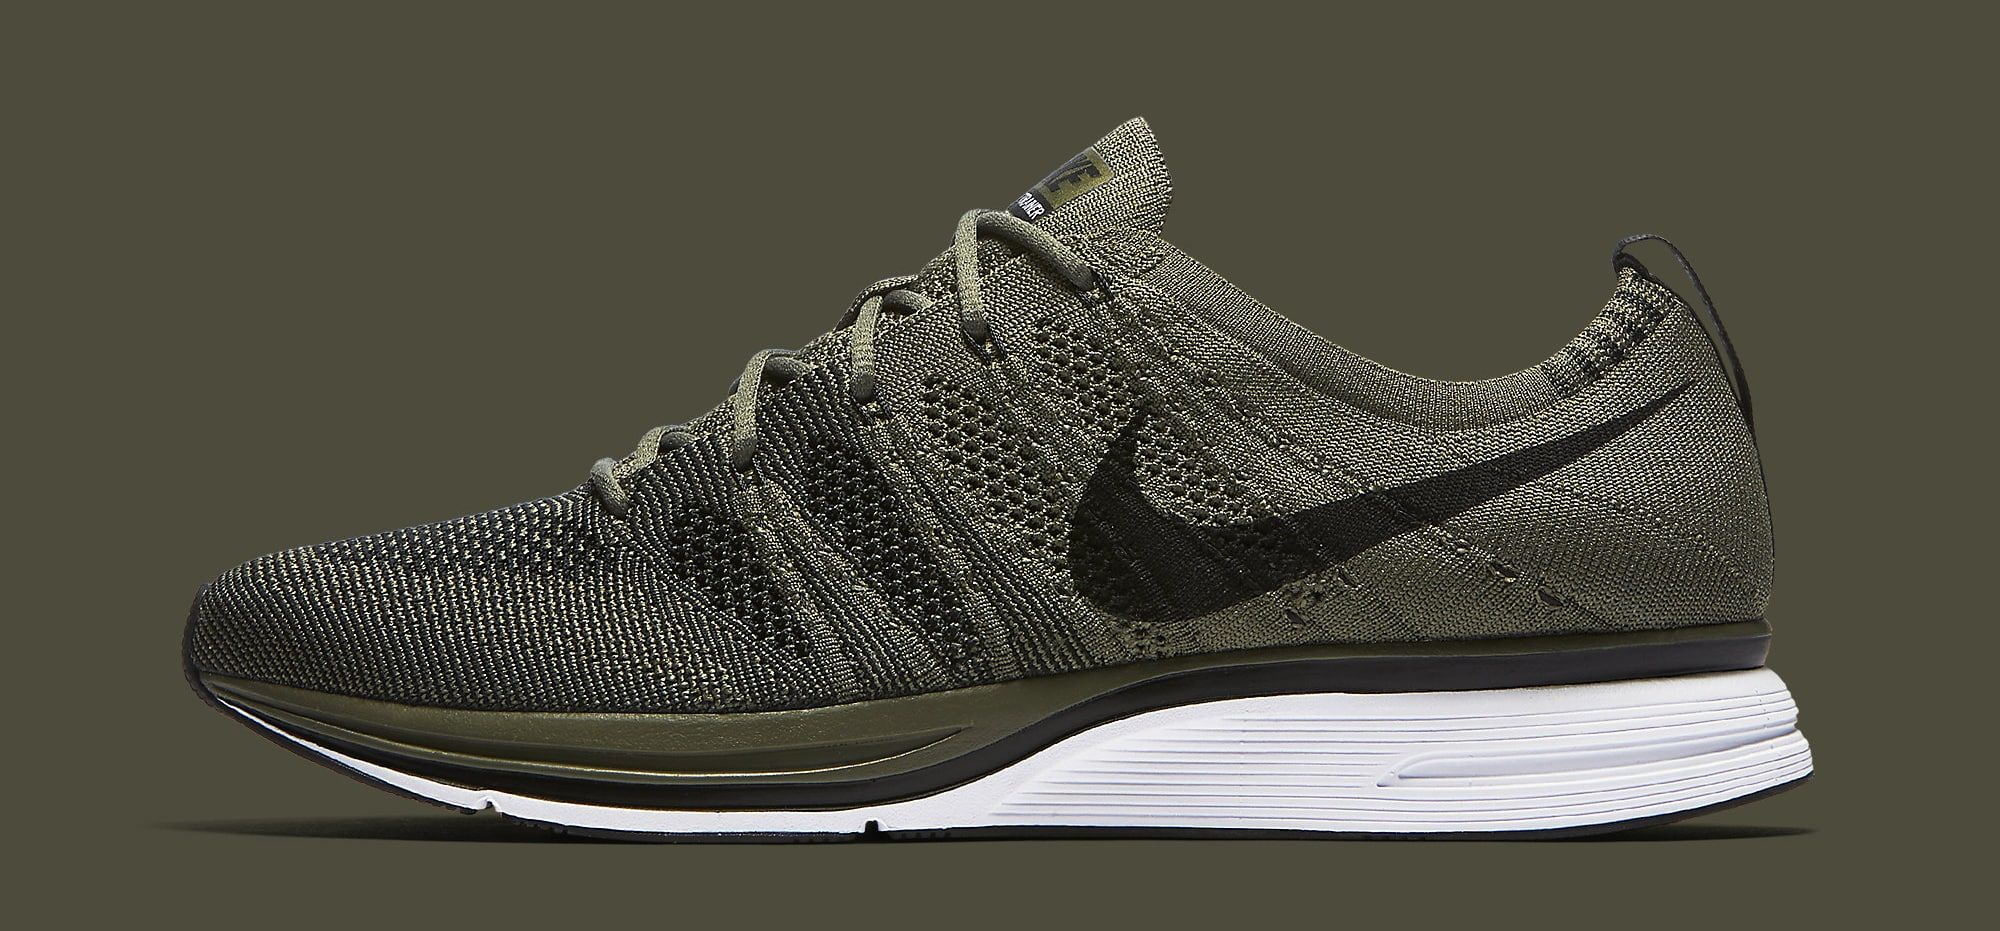 Nike Flyknit Trainer Olive AH8396-200 Profile